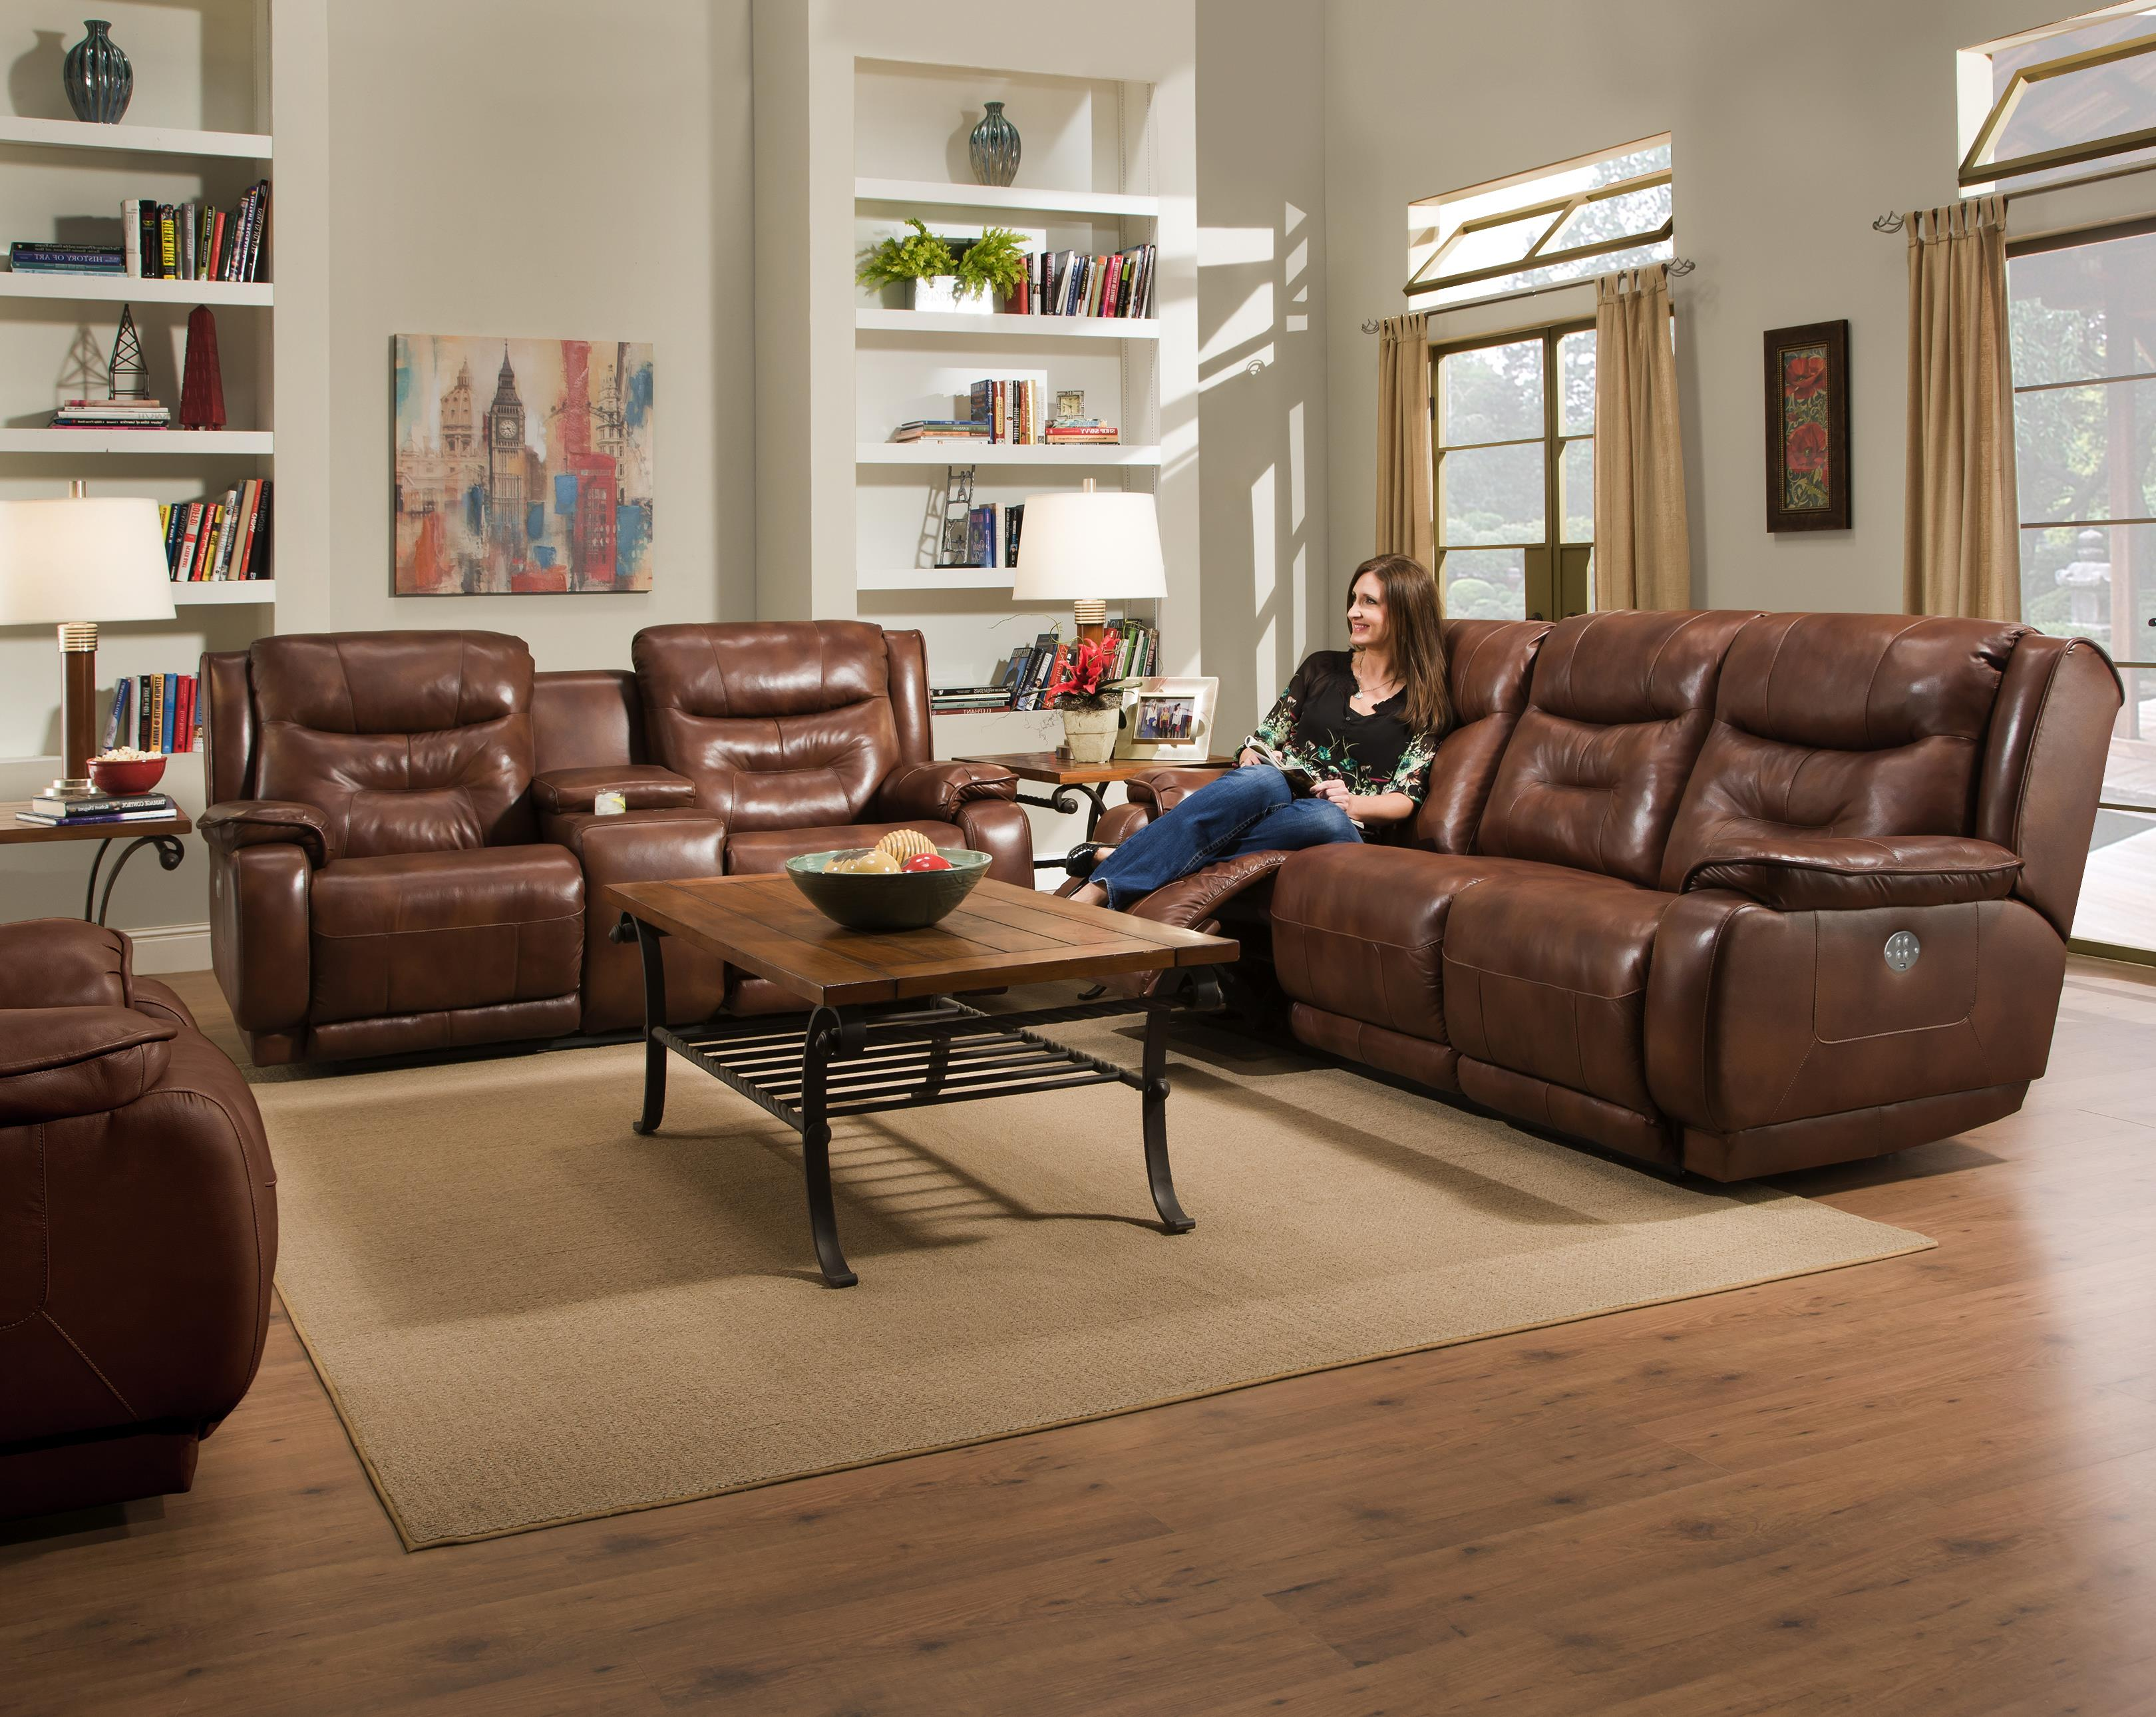 southern motion furniture reviews Crescent (874) by Southern Motion   Becker Furniture World  southern motion furniture reviews